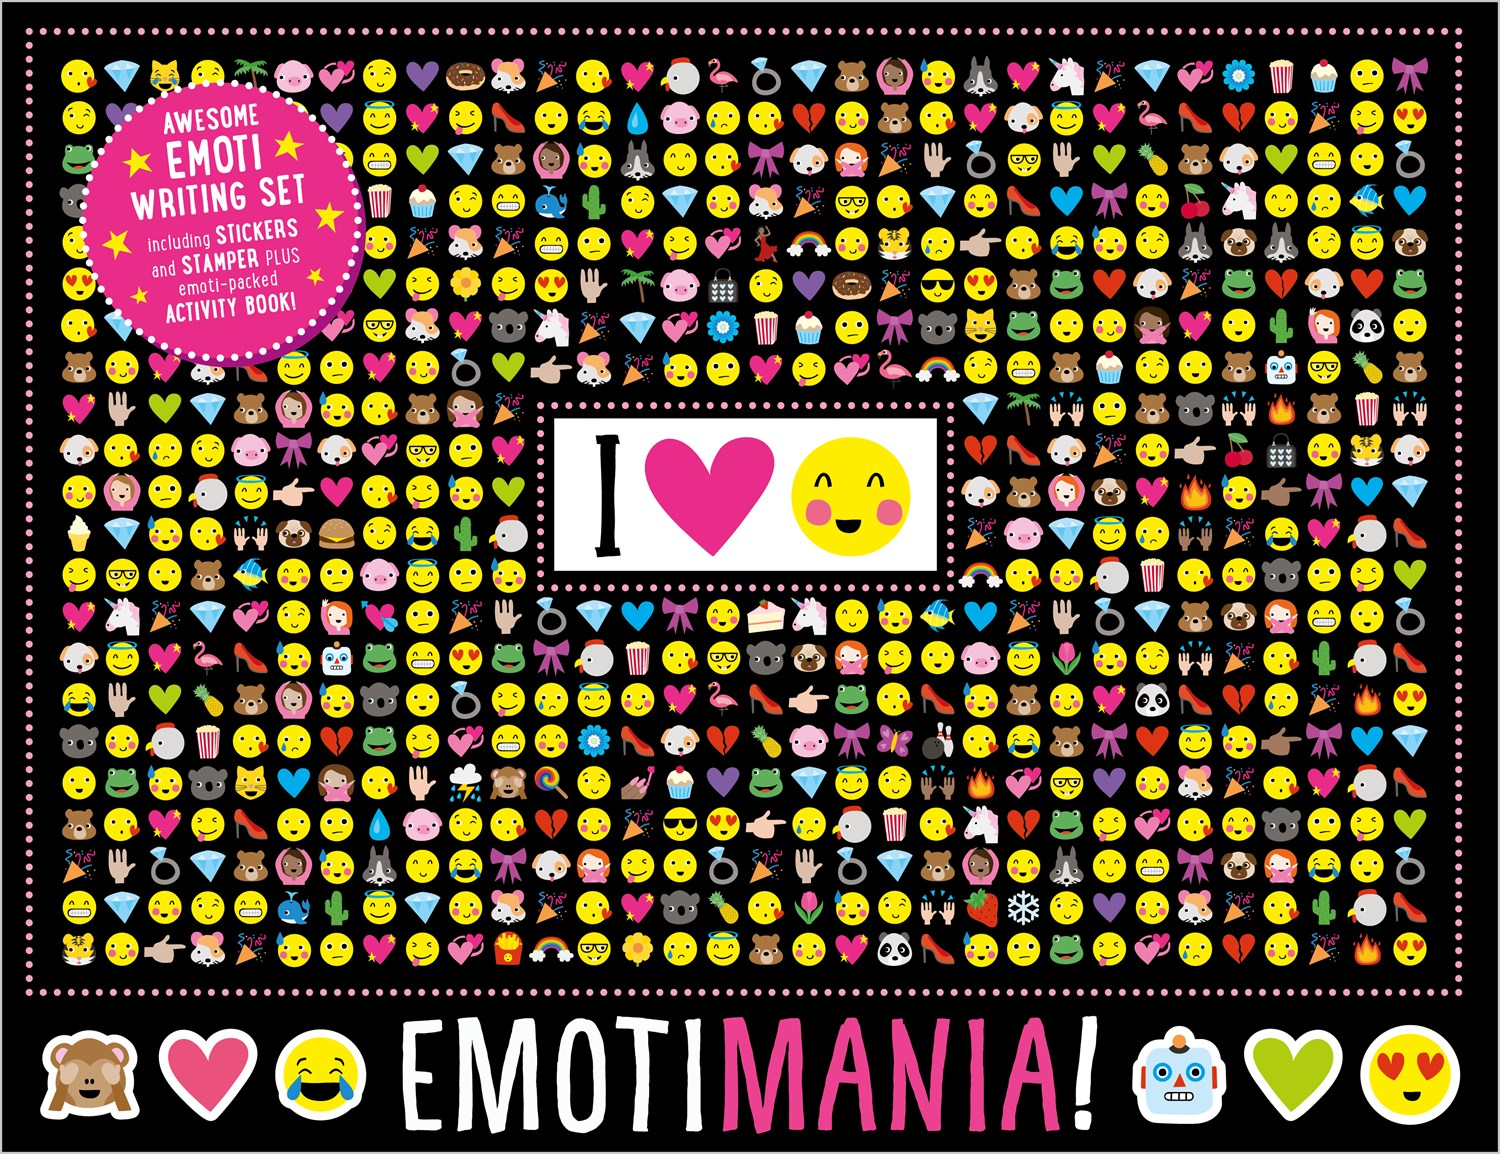 Emotimania Activity Chest